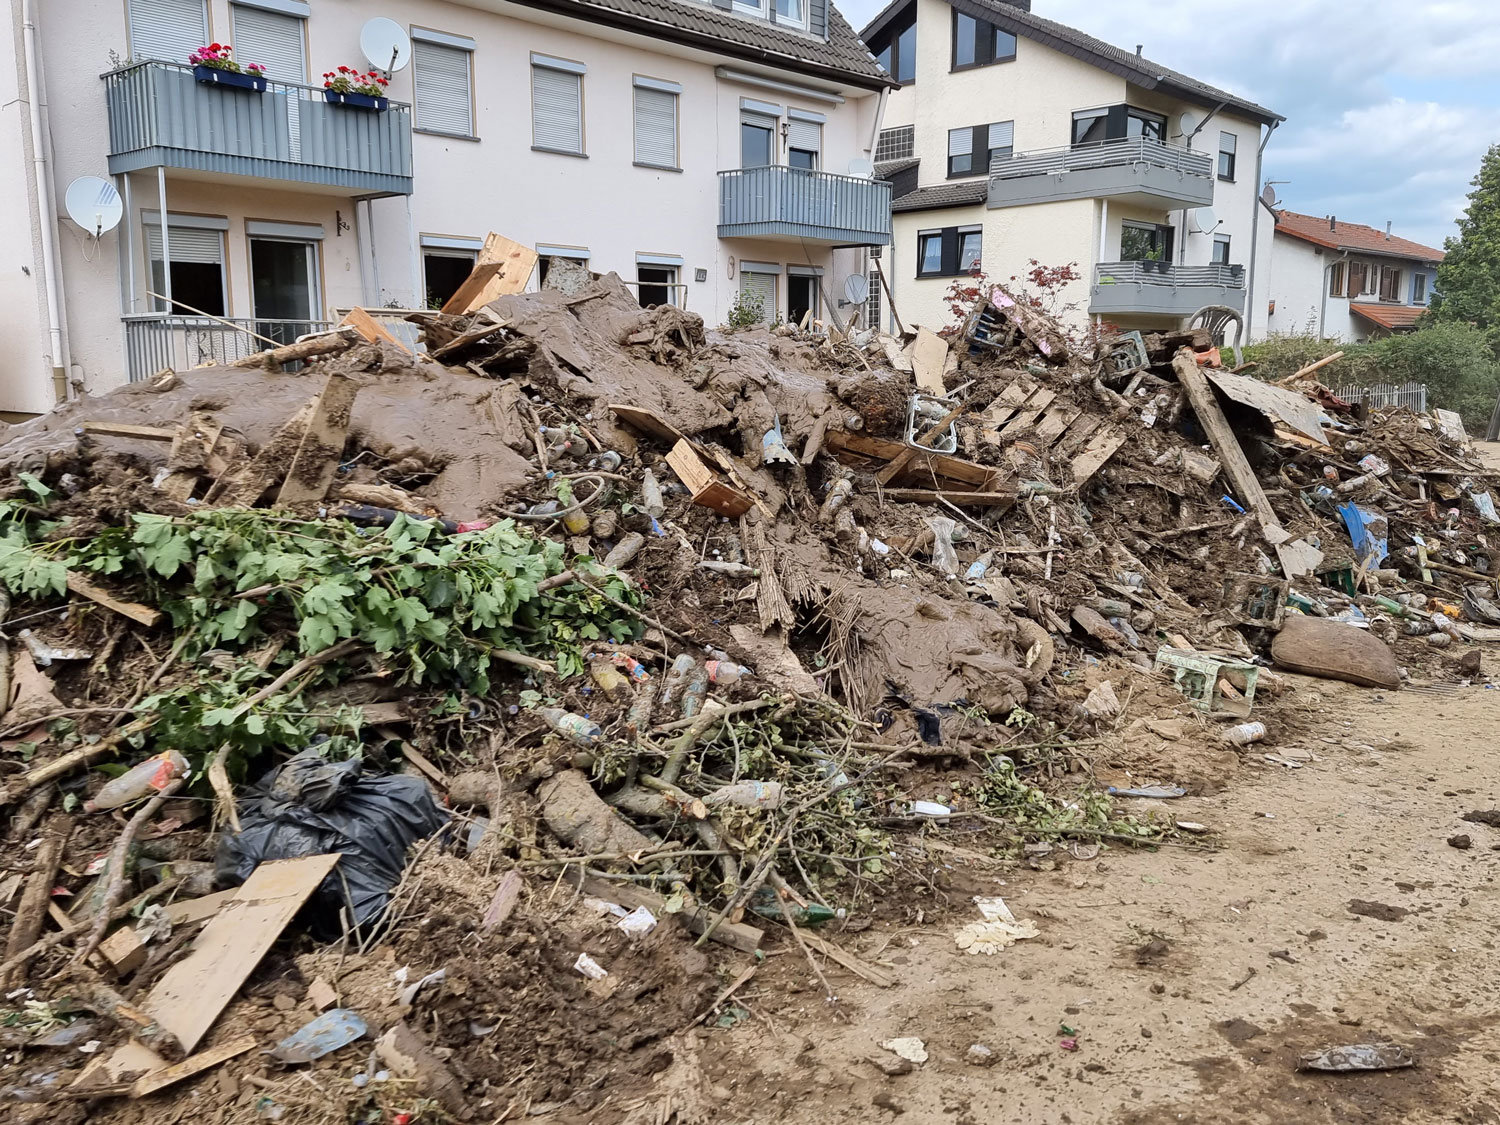 Western Europe has been devastated by flooding from heavy rains that started July 14.